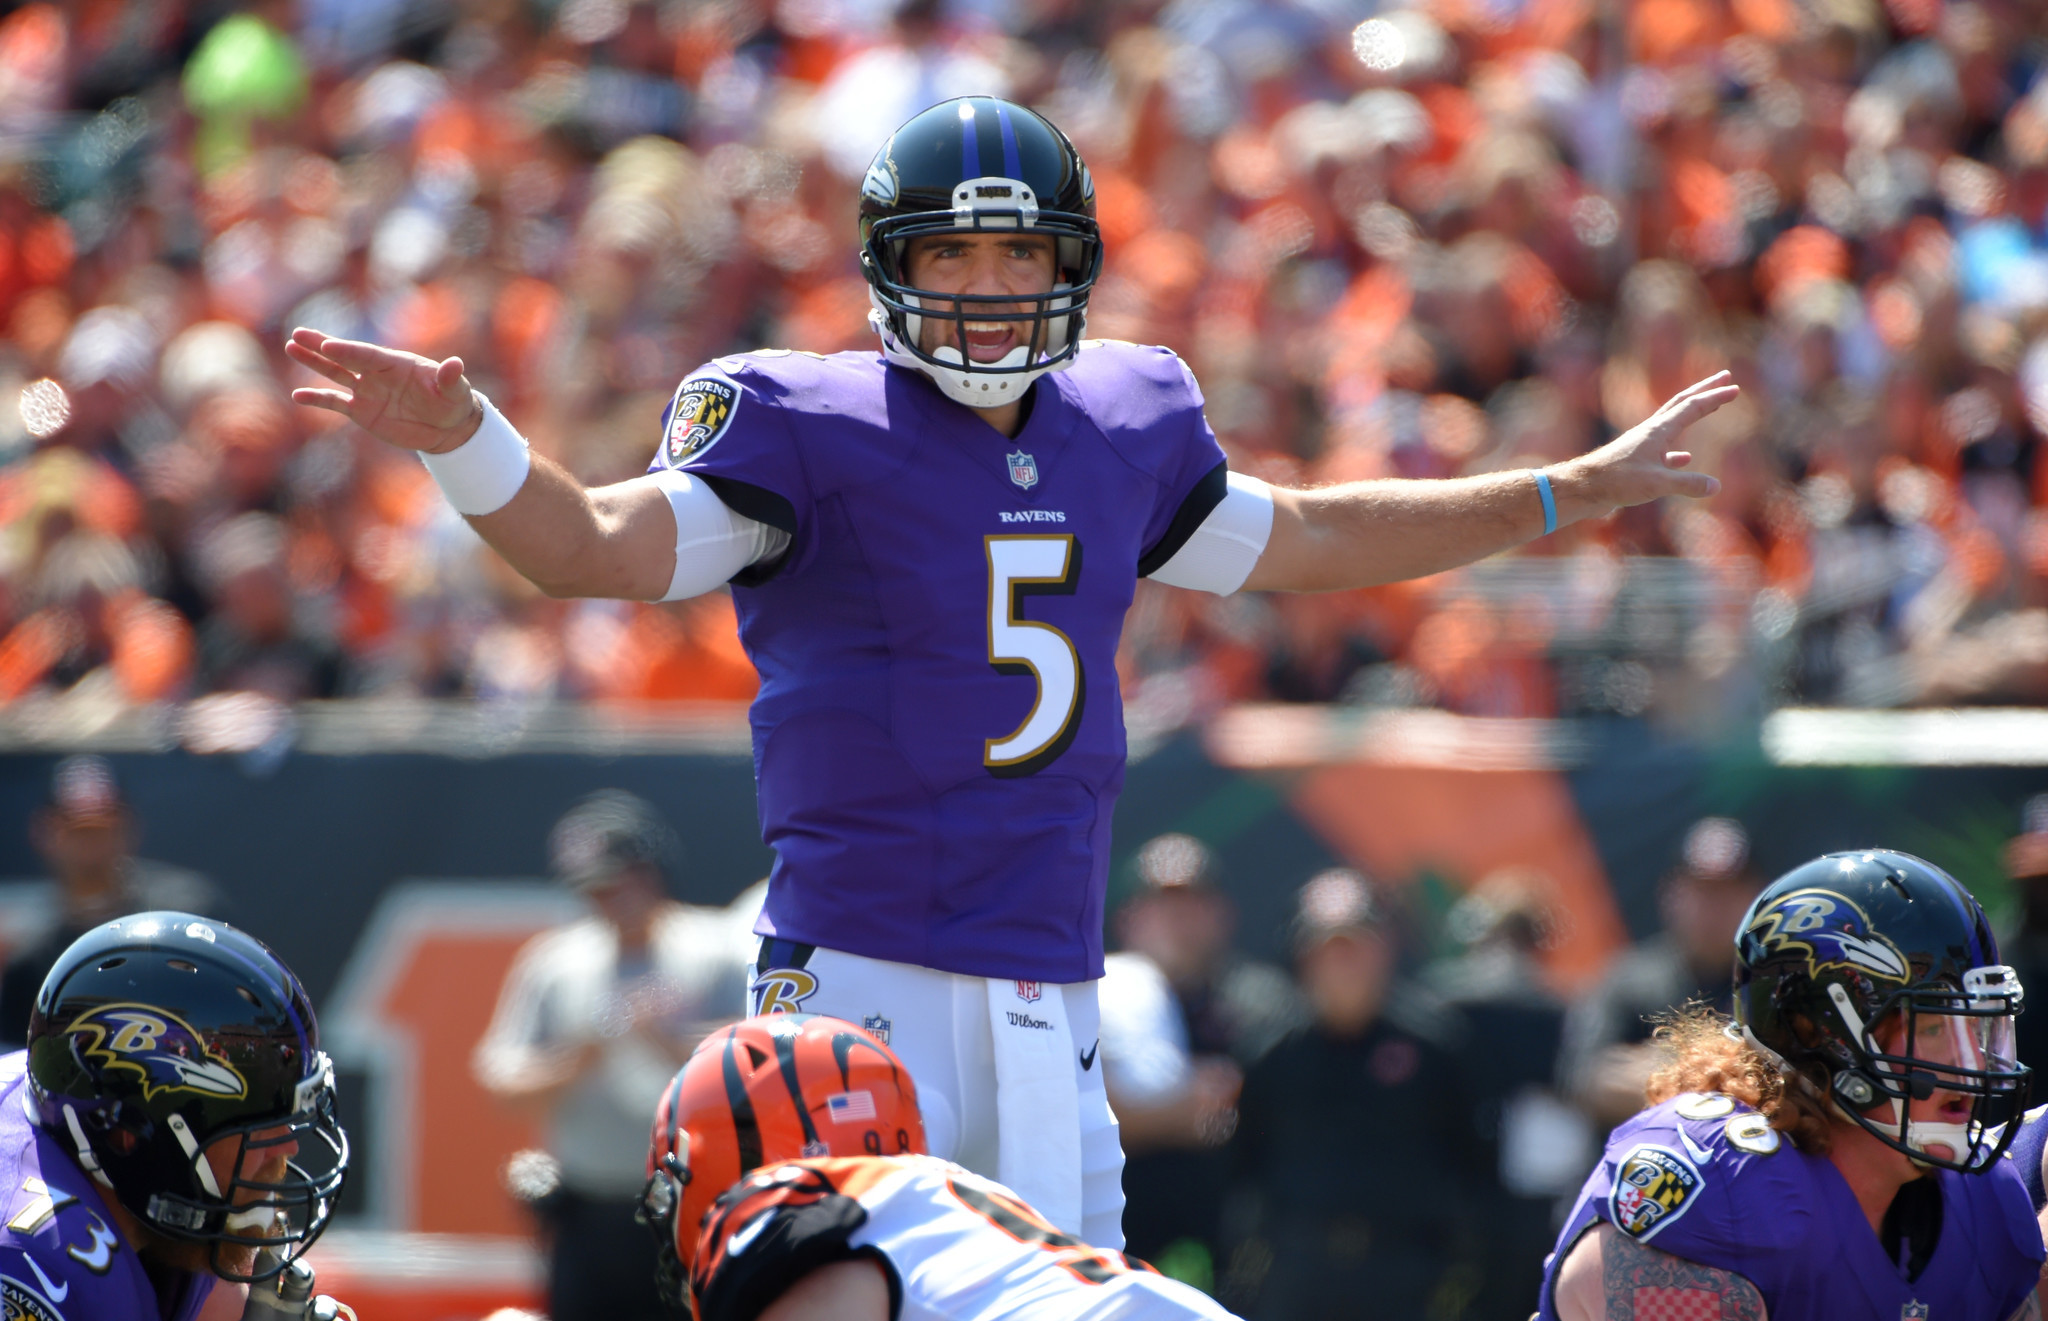 Bal-ravens-gameday-what-you-need-to-know-going-into-today-s-game-against-bengals-20171230